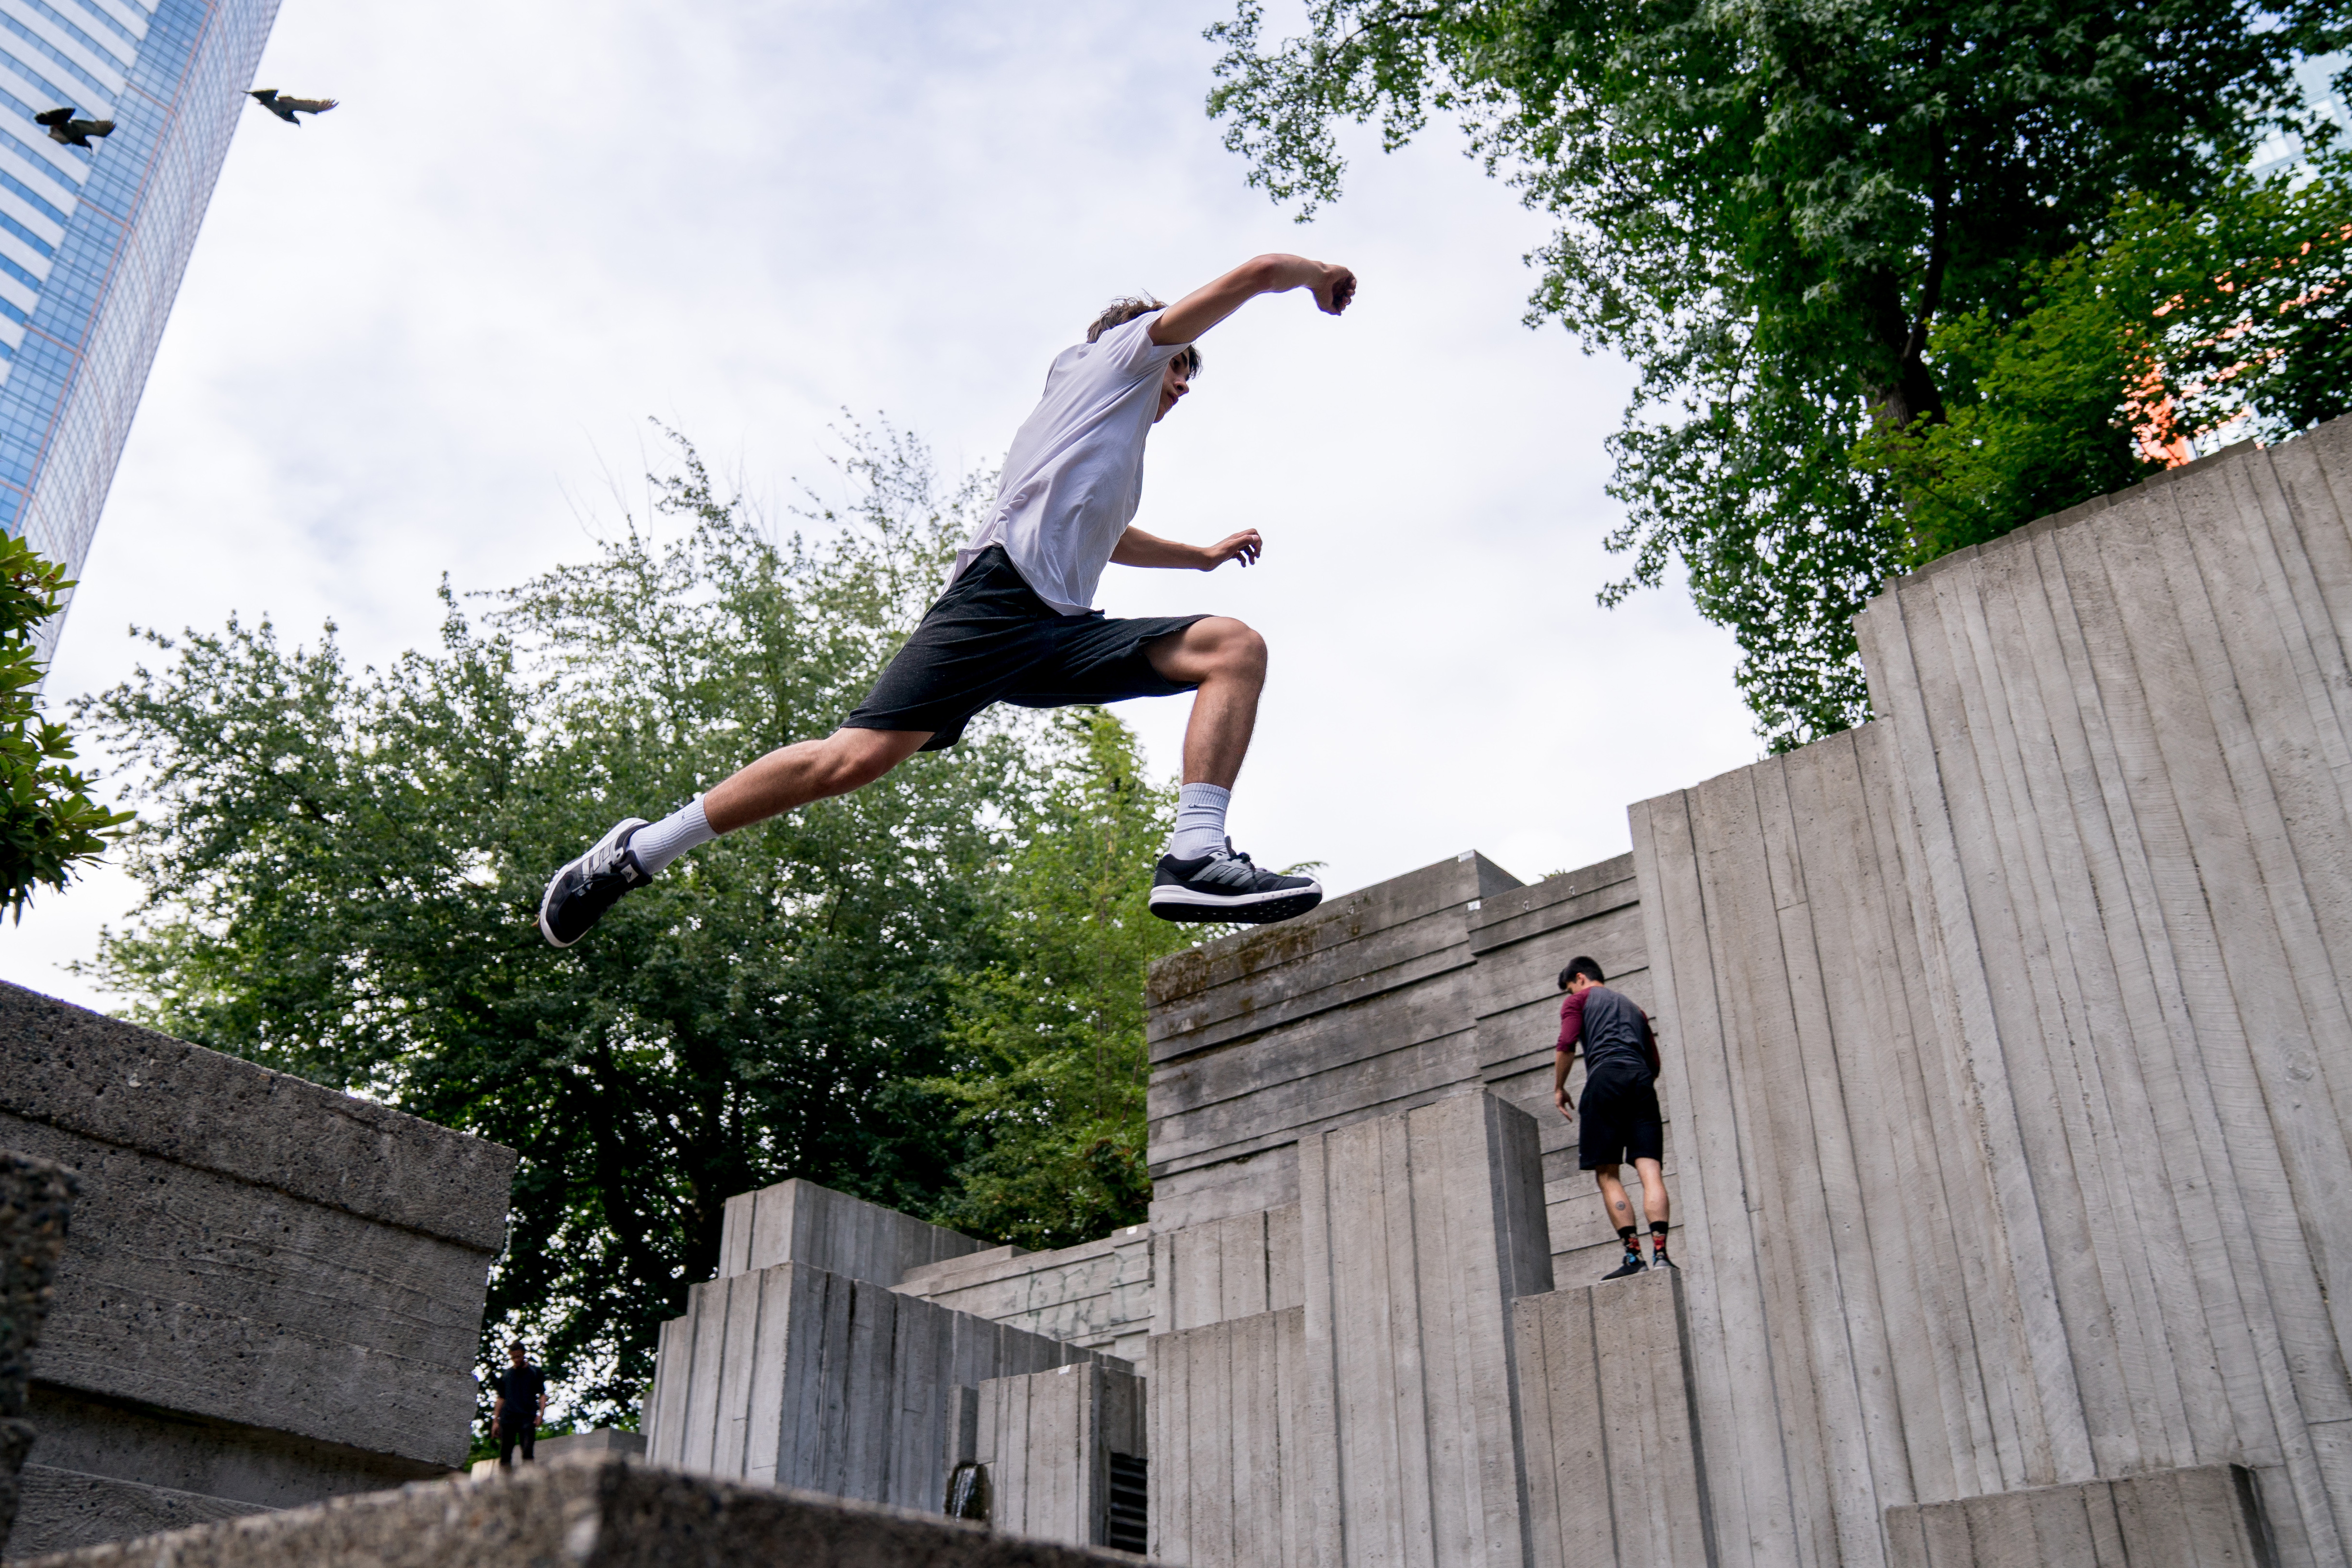 Gallery Photographing Parkour With The Sony A9 Digital